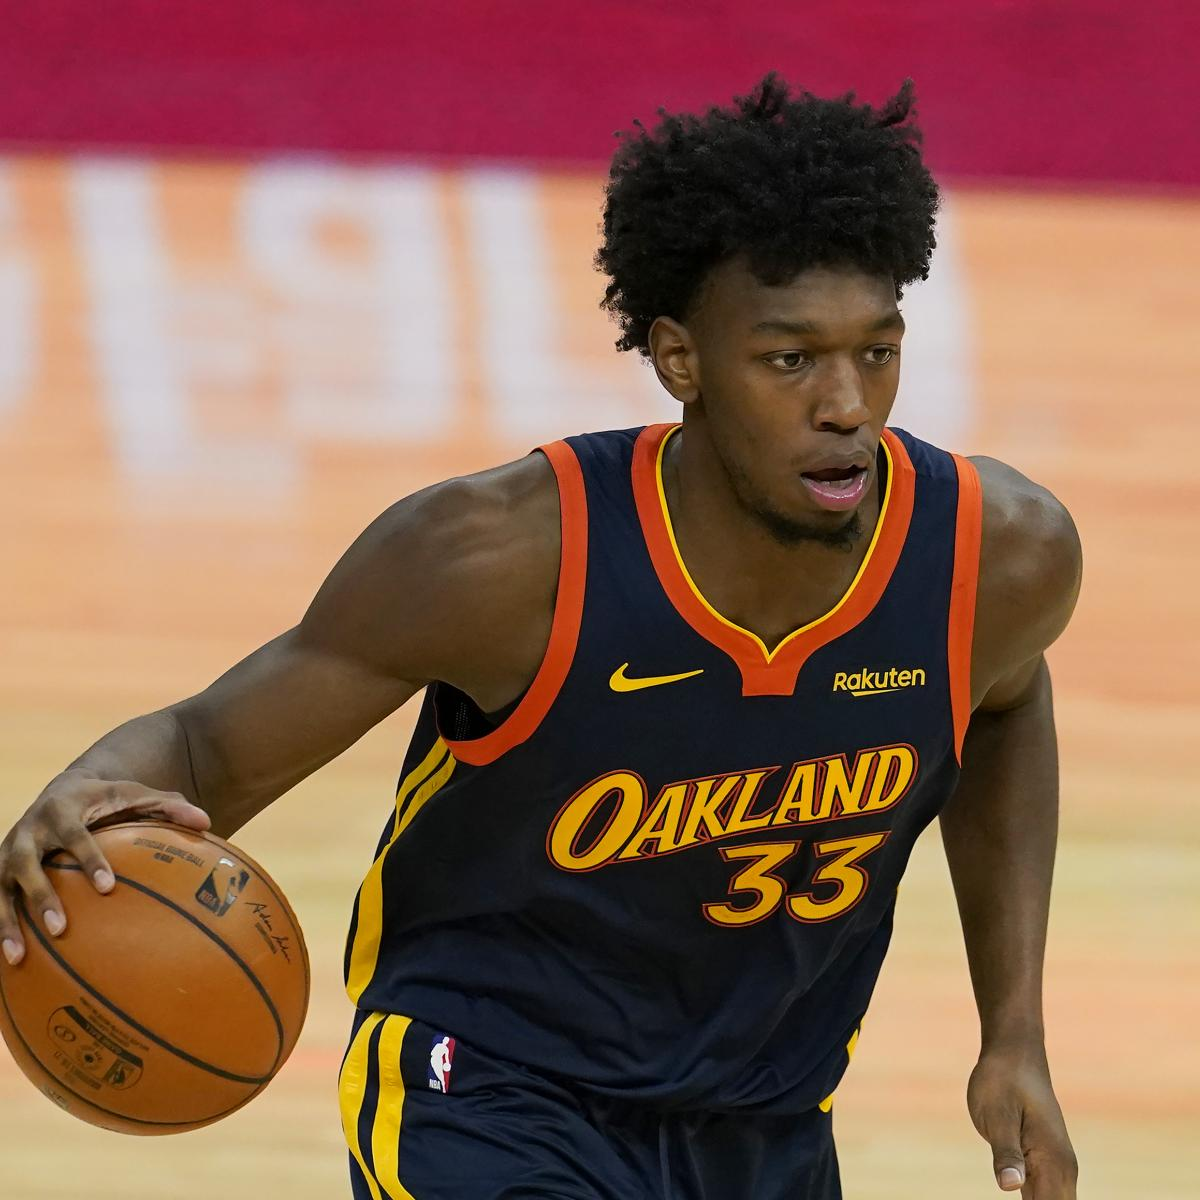 Report: Warriors' James Wiseman Feared to Be out for Season After Knee Injury thumbnail